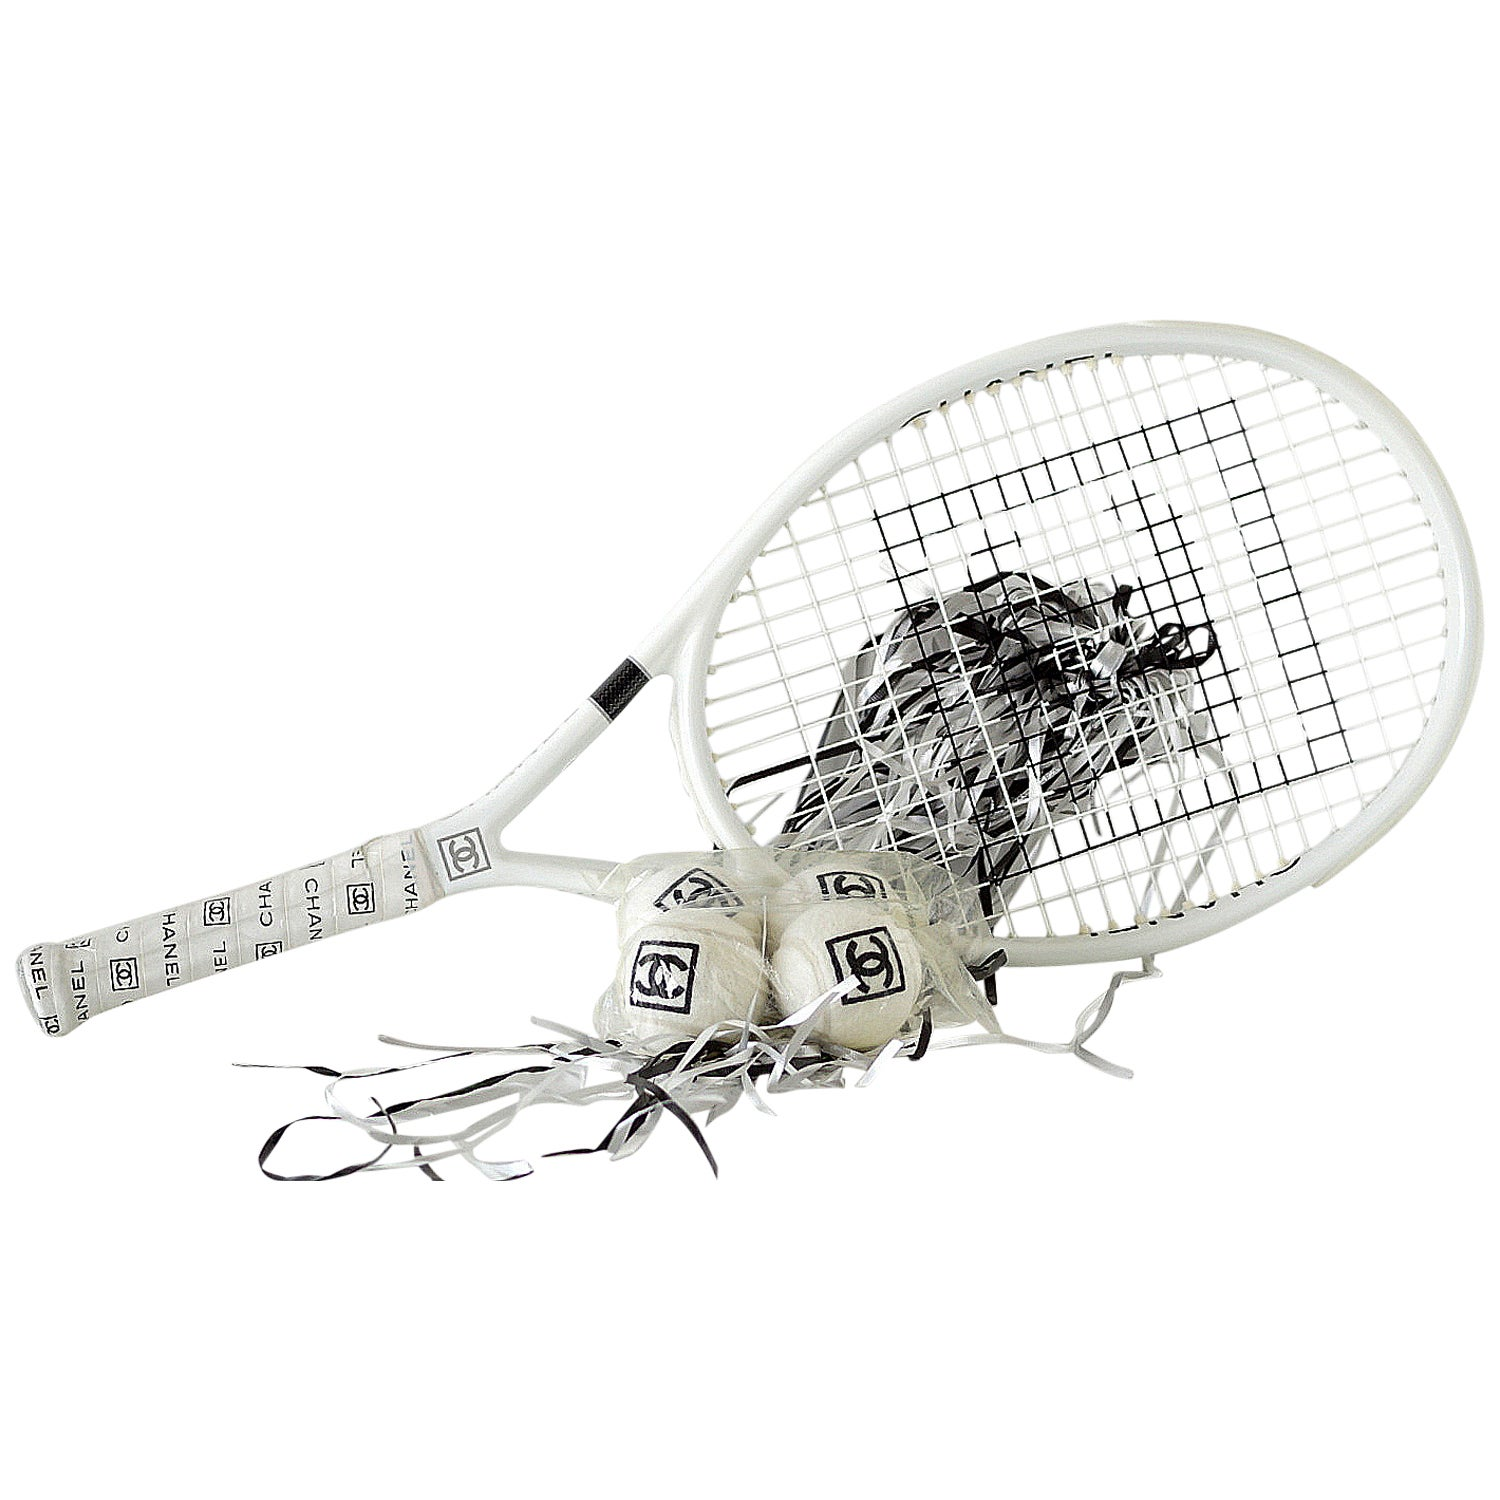 Chanel Limited Edition Tennis Racquet 4 Chanel Tennis Balls And Case